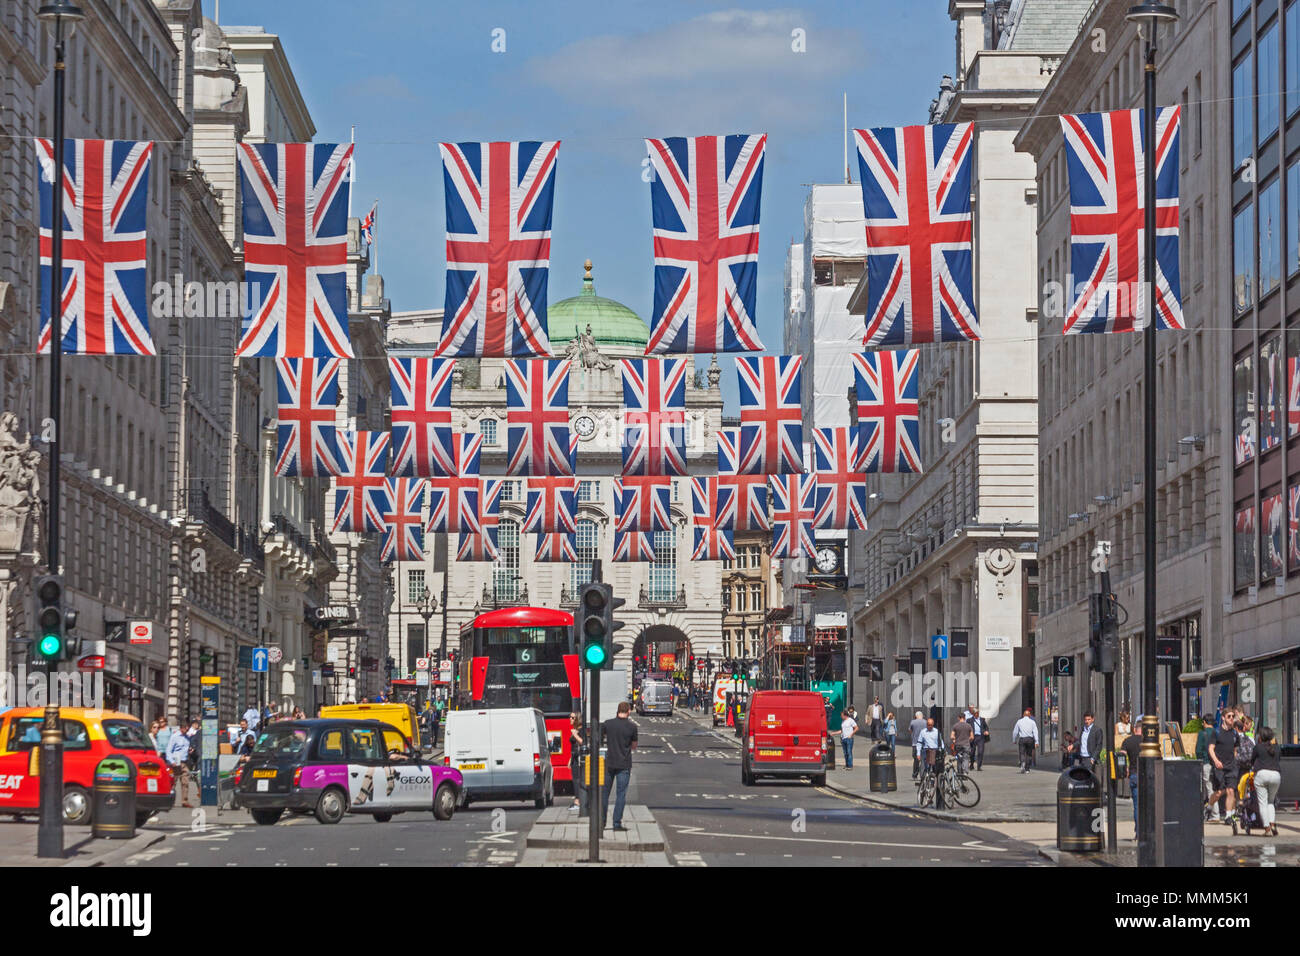 London, Westminster.  Union flags decorating Lower Regent Street prior to the royal wedding of 2018 - Stock Image